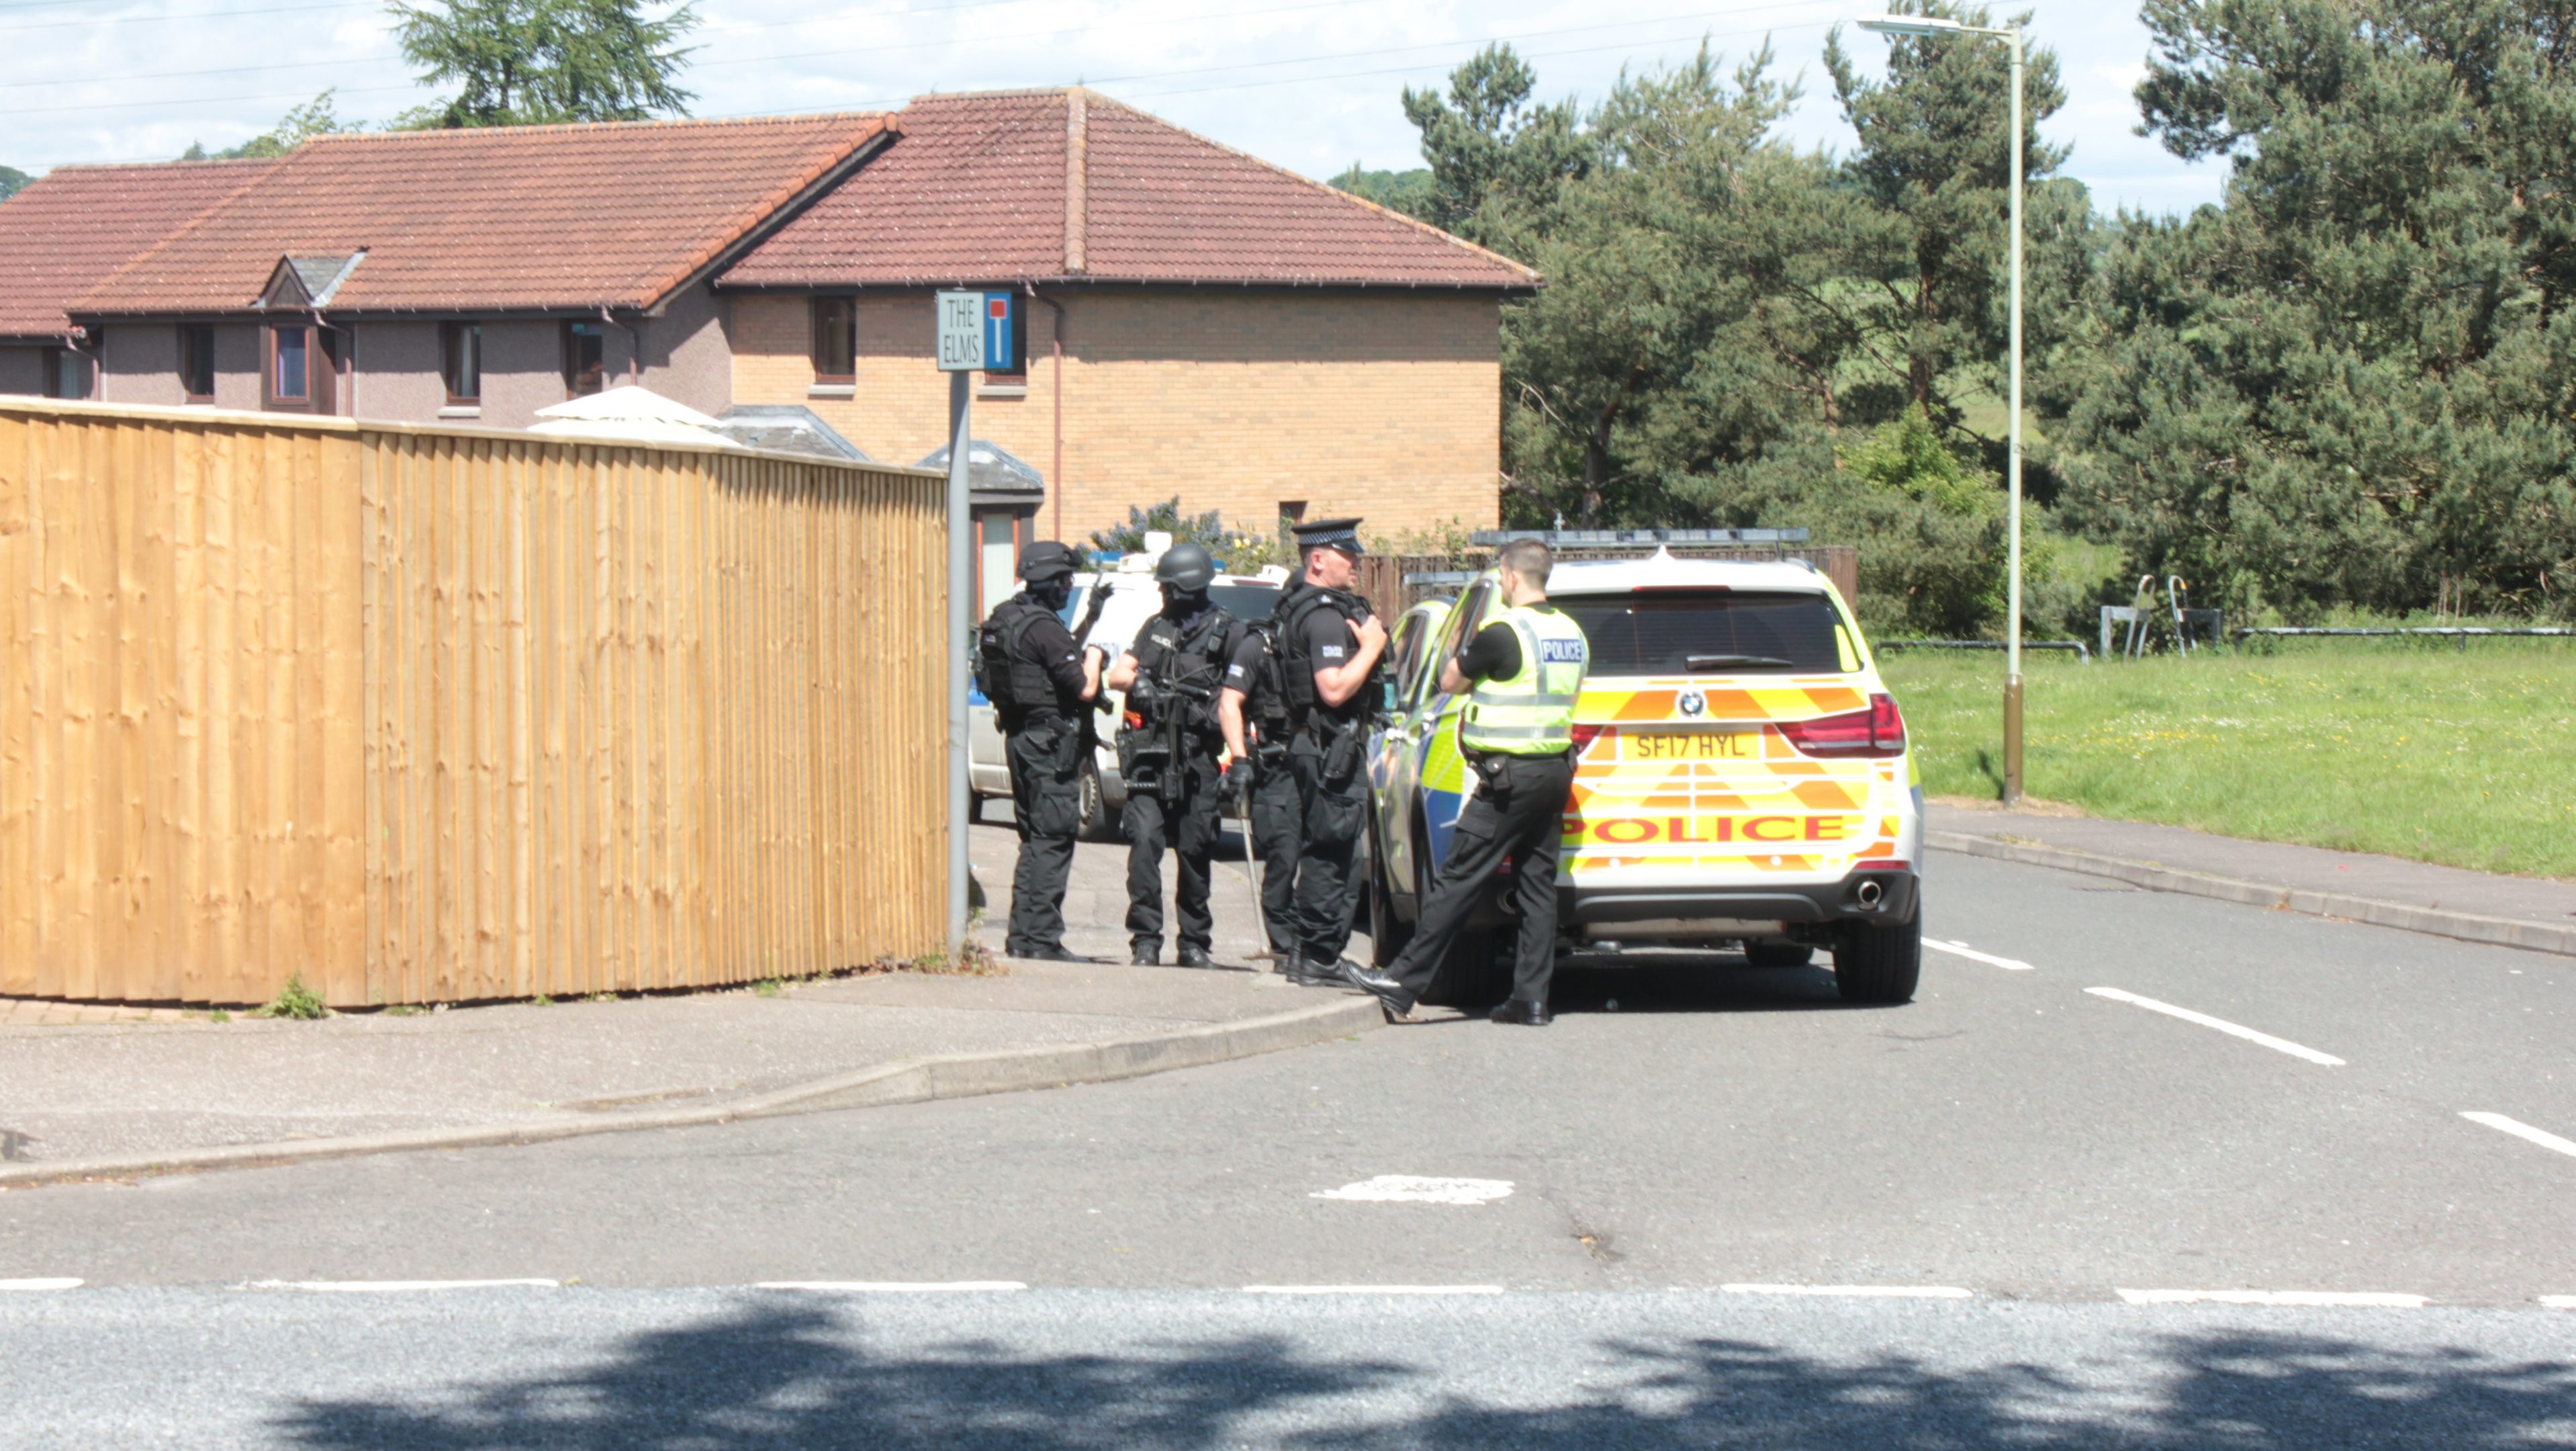 Armed police have been deployed in communities in Dundee twice in the last week.